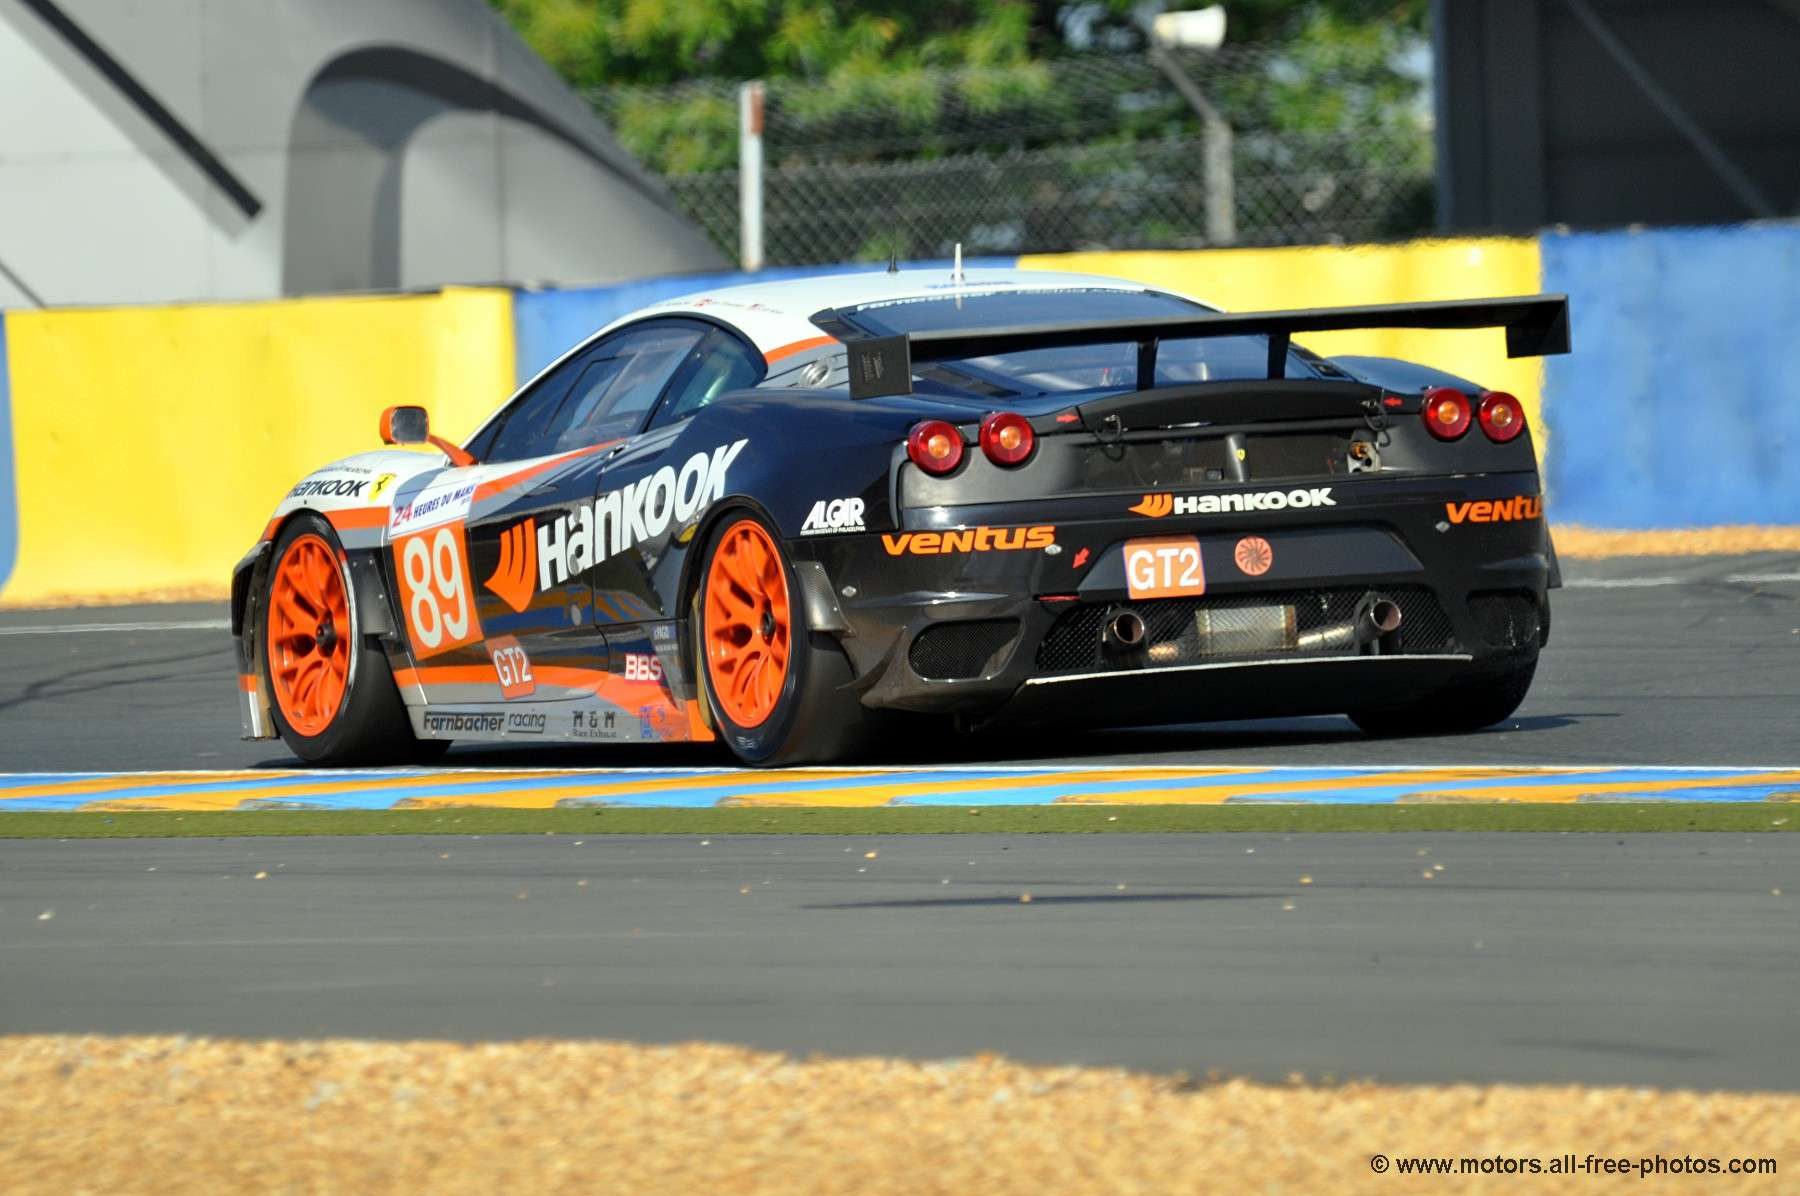 Ferrari 430 GTC - Team Hankook Farnbacher